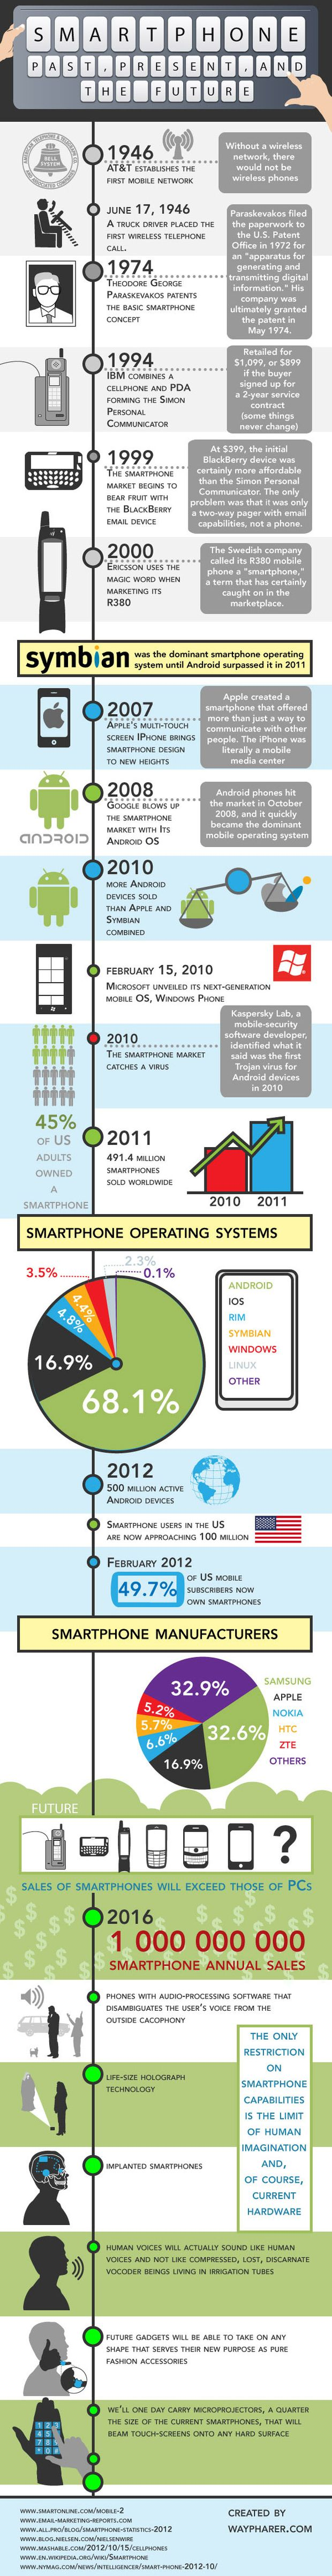 Smartphone-Past-Present-and-the-Future